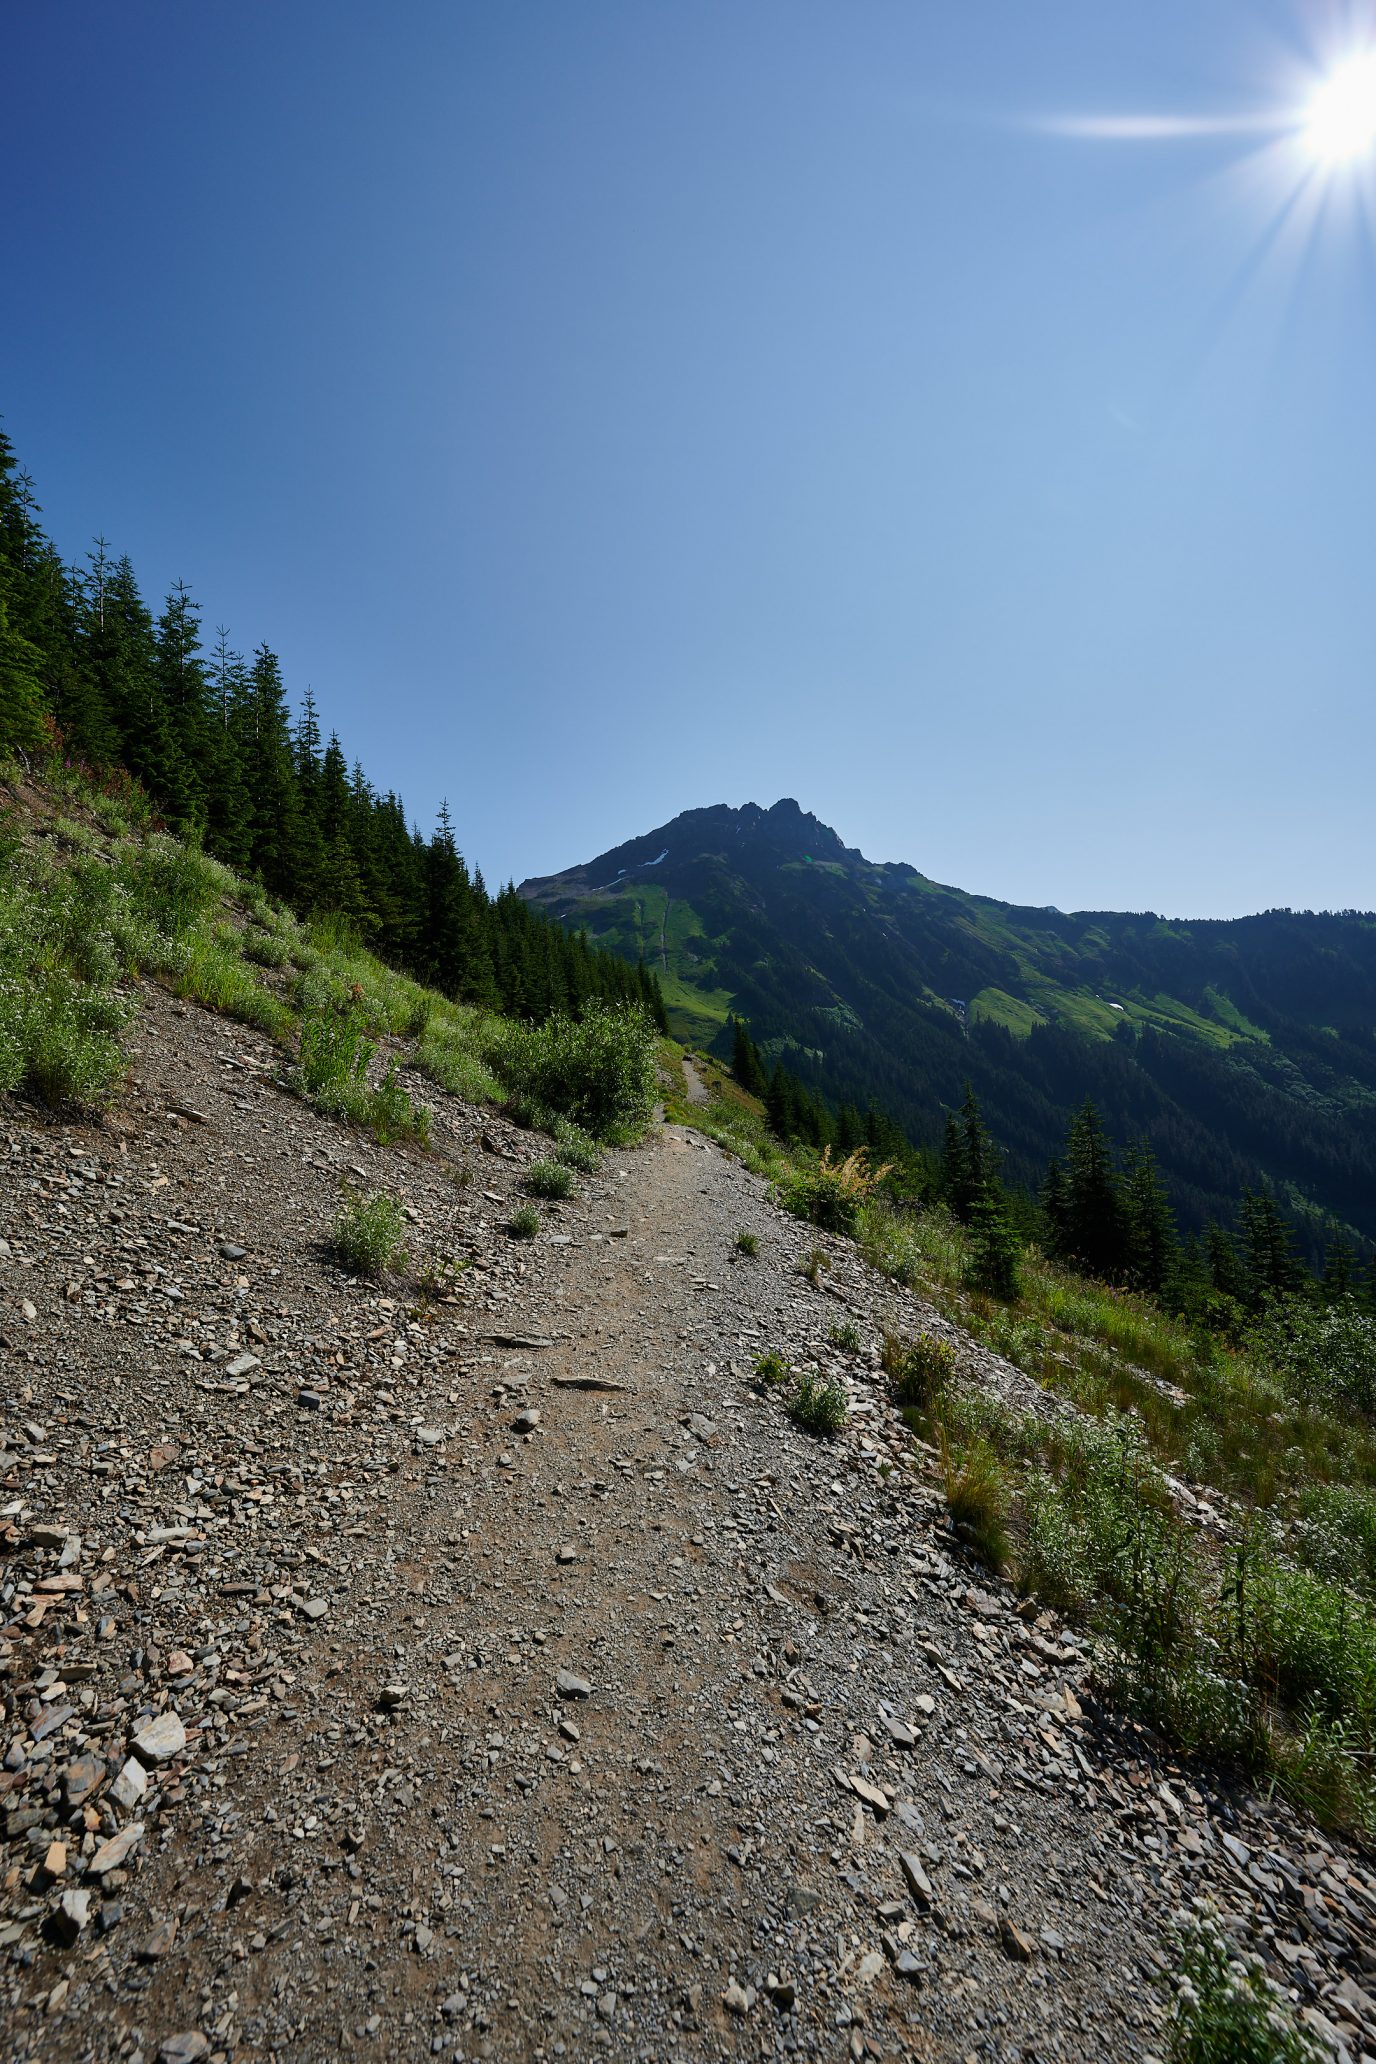 Cheam Peak Hike - Chilliwack, BC, Canada - Fraser Valley Hiking - Nikon Z7 and Nikkor 14-30 f/4 S Lens